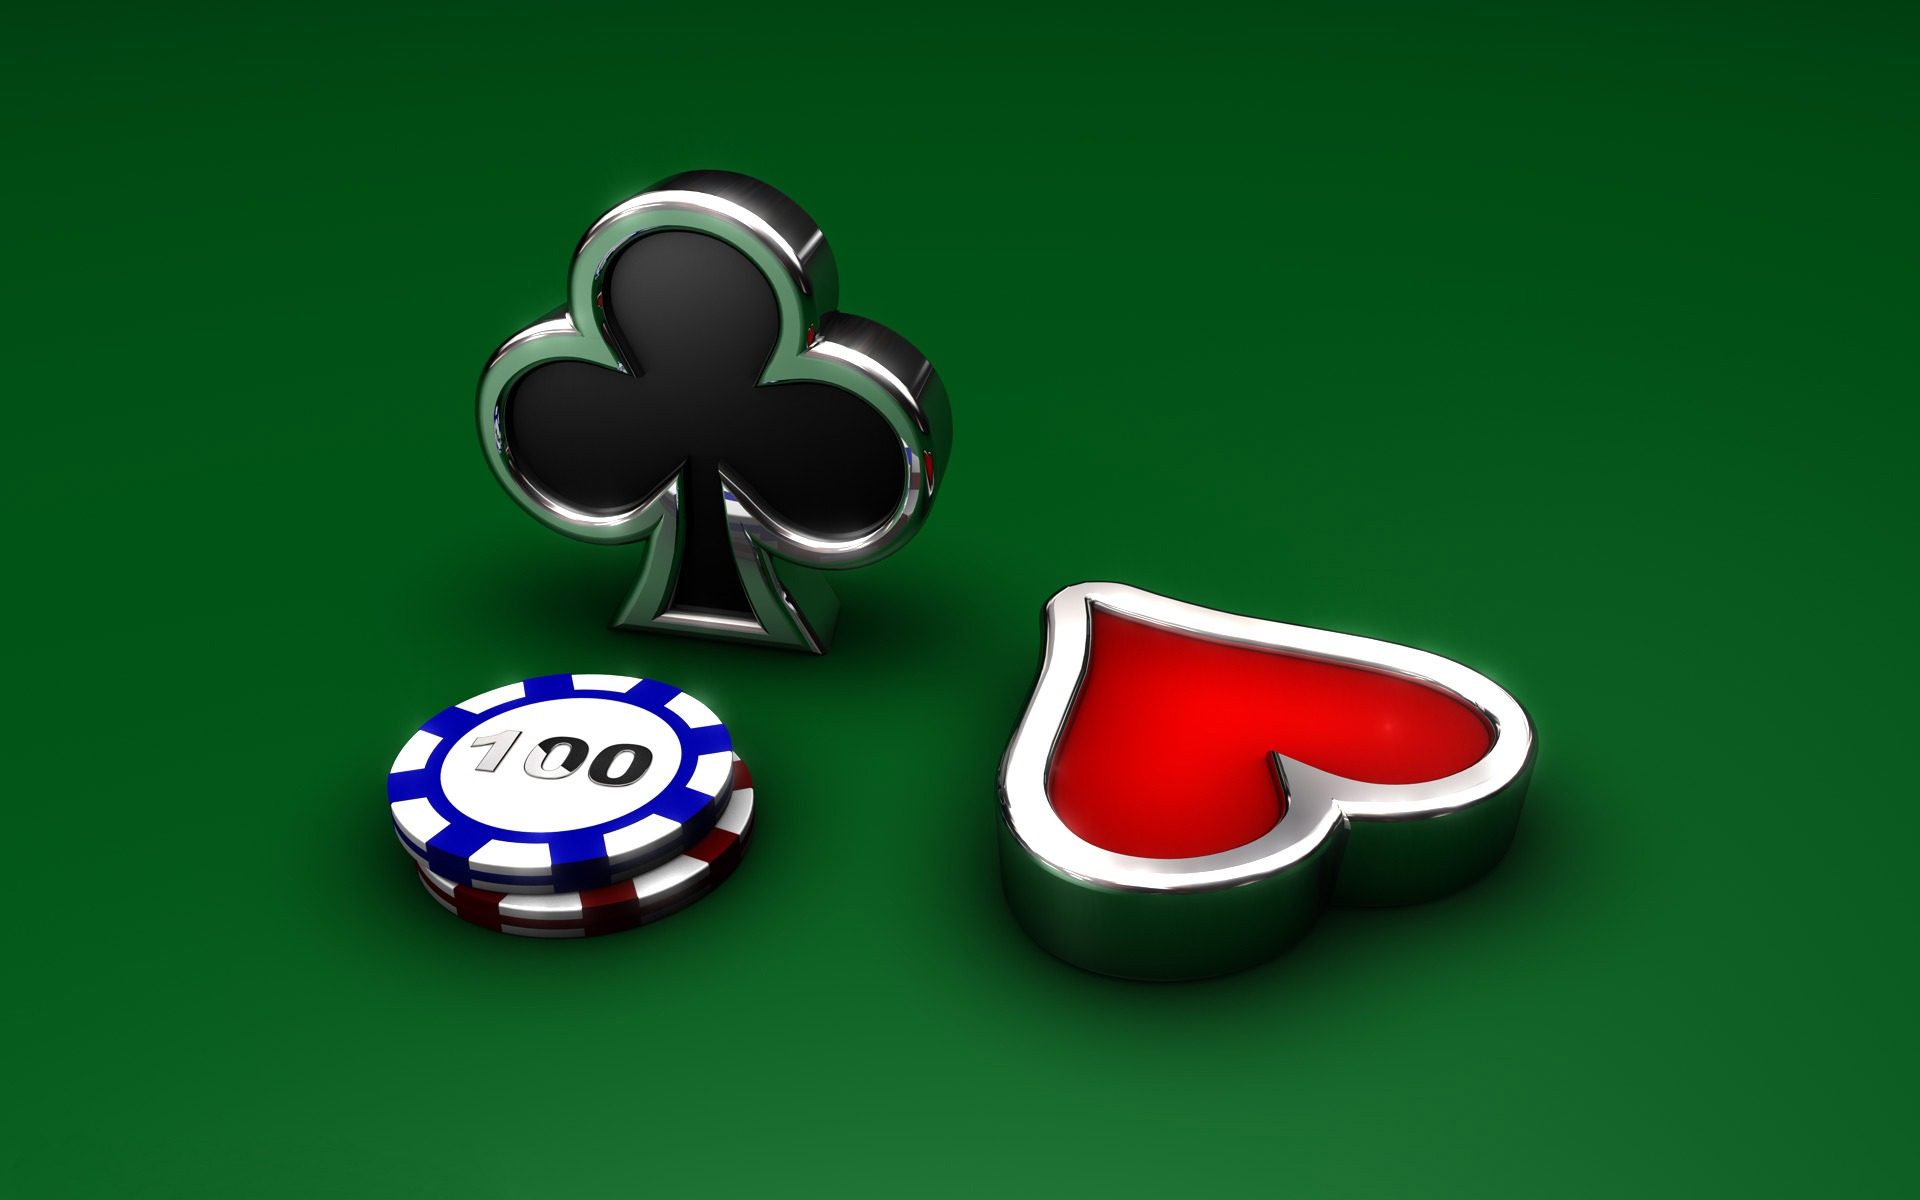 royal flush wallpapers | royal flush stock photos